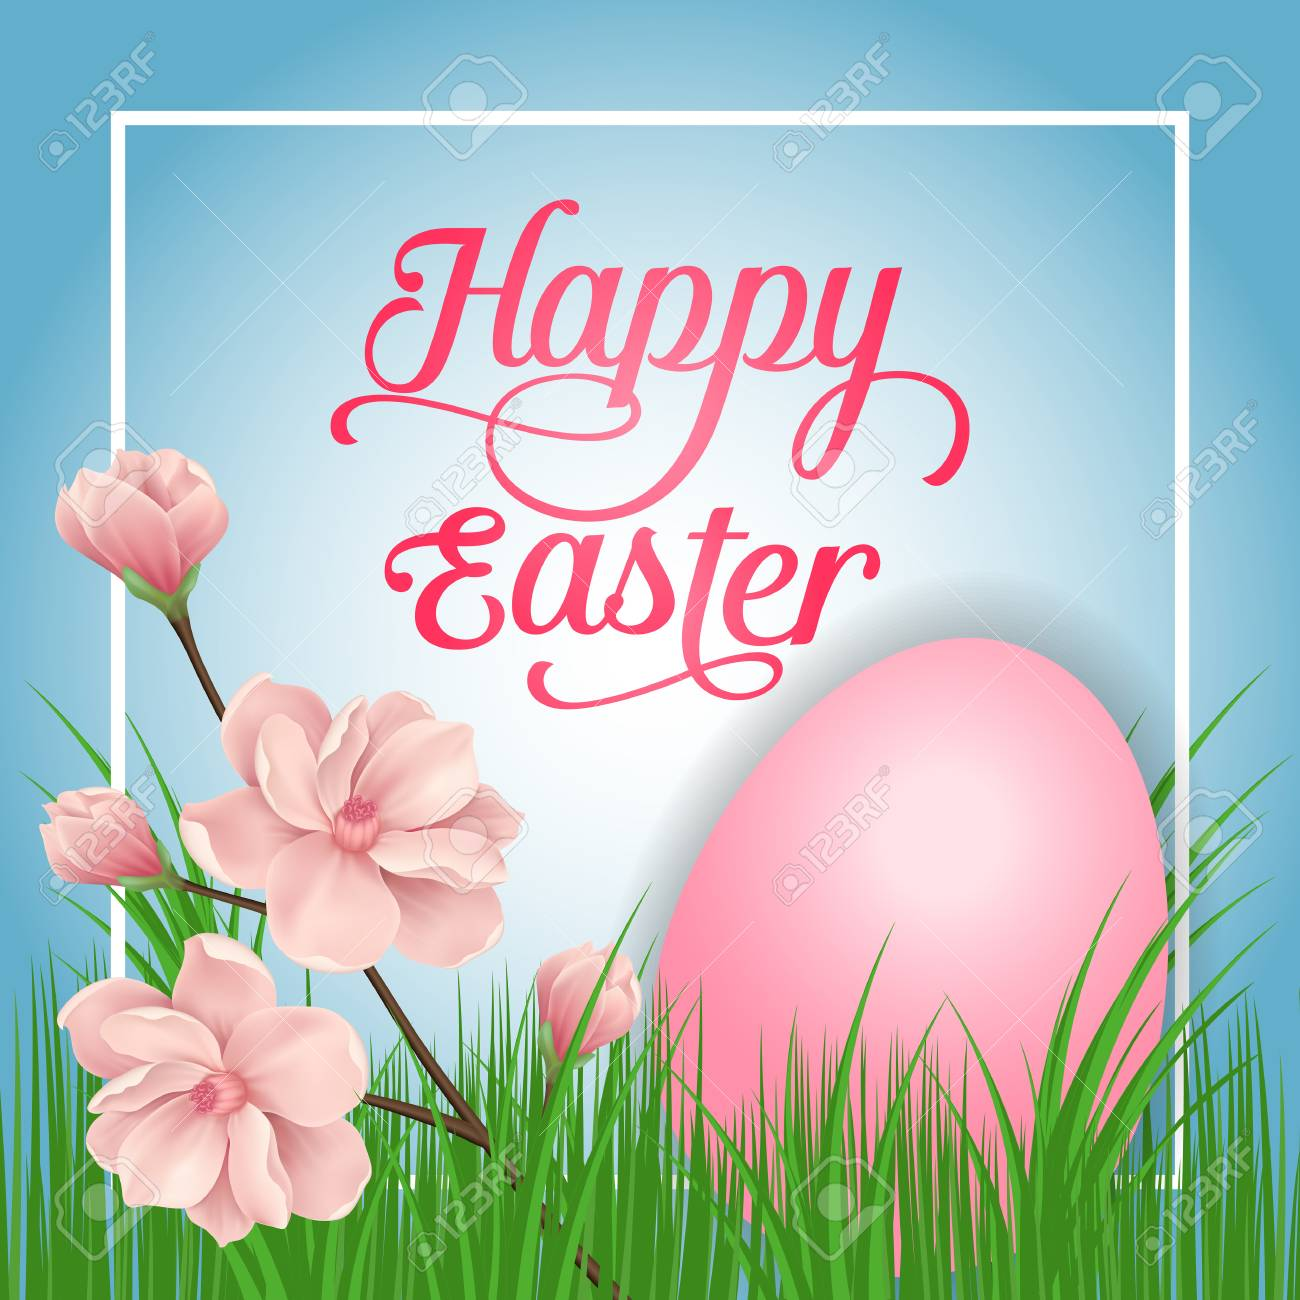 Happy Easter Lettering In Frame Easter Greeting Card With Egg